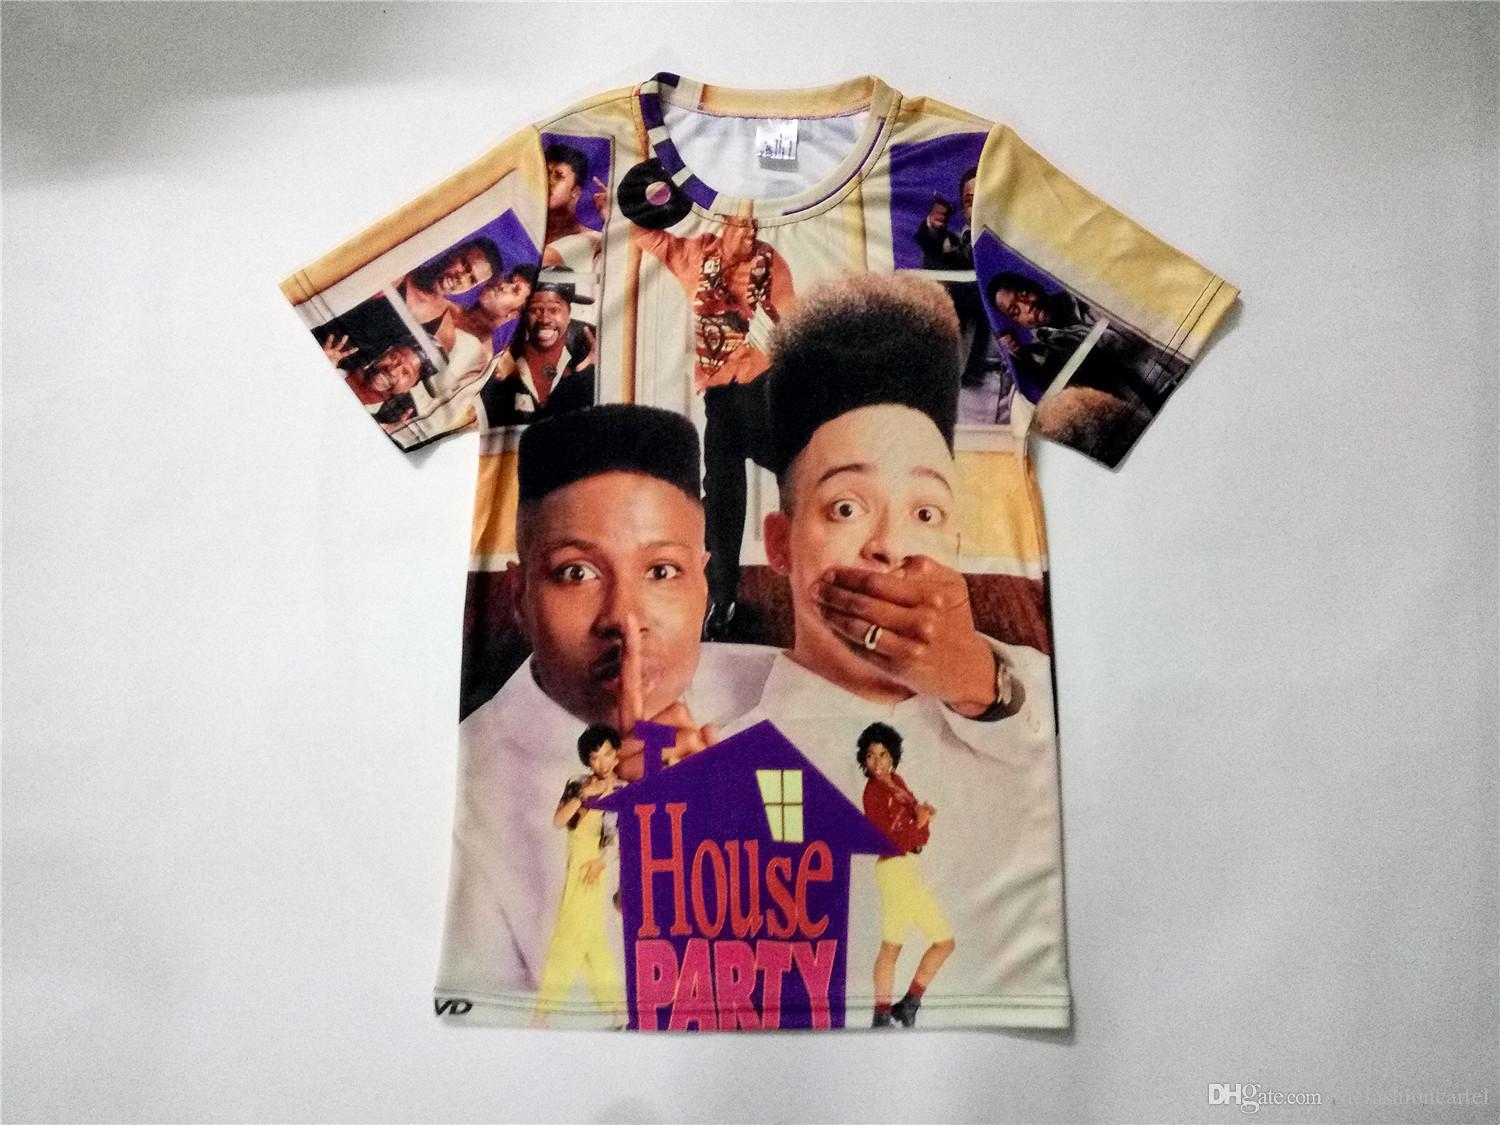 1c4de2305a2 Real USA Size 2 Styles Custom Made House Party 3D Sublimation Print T Shirt  Unisex Clothing Shirt Online Cartoon T Shirts From Thefashioncartel